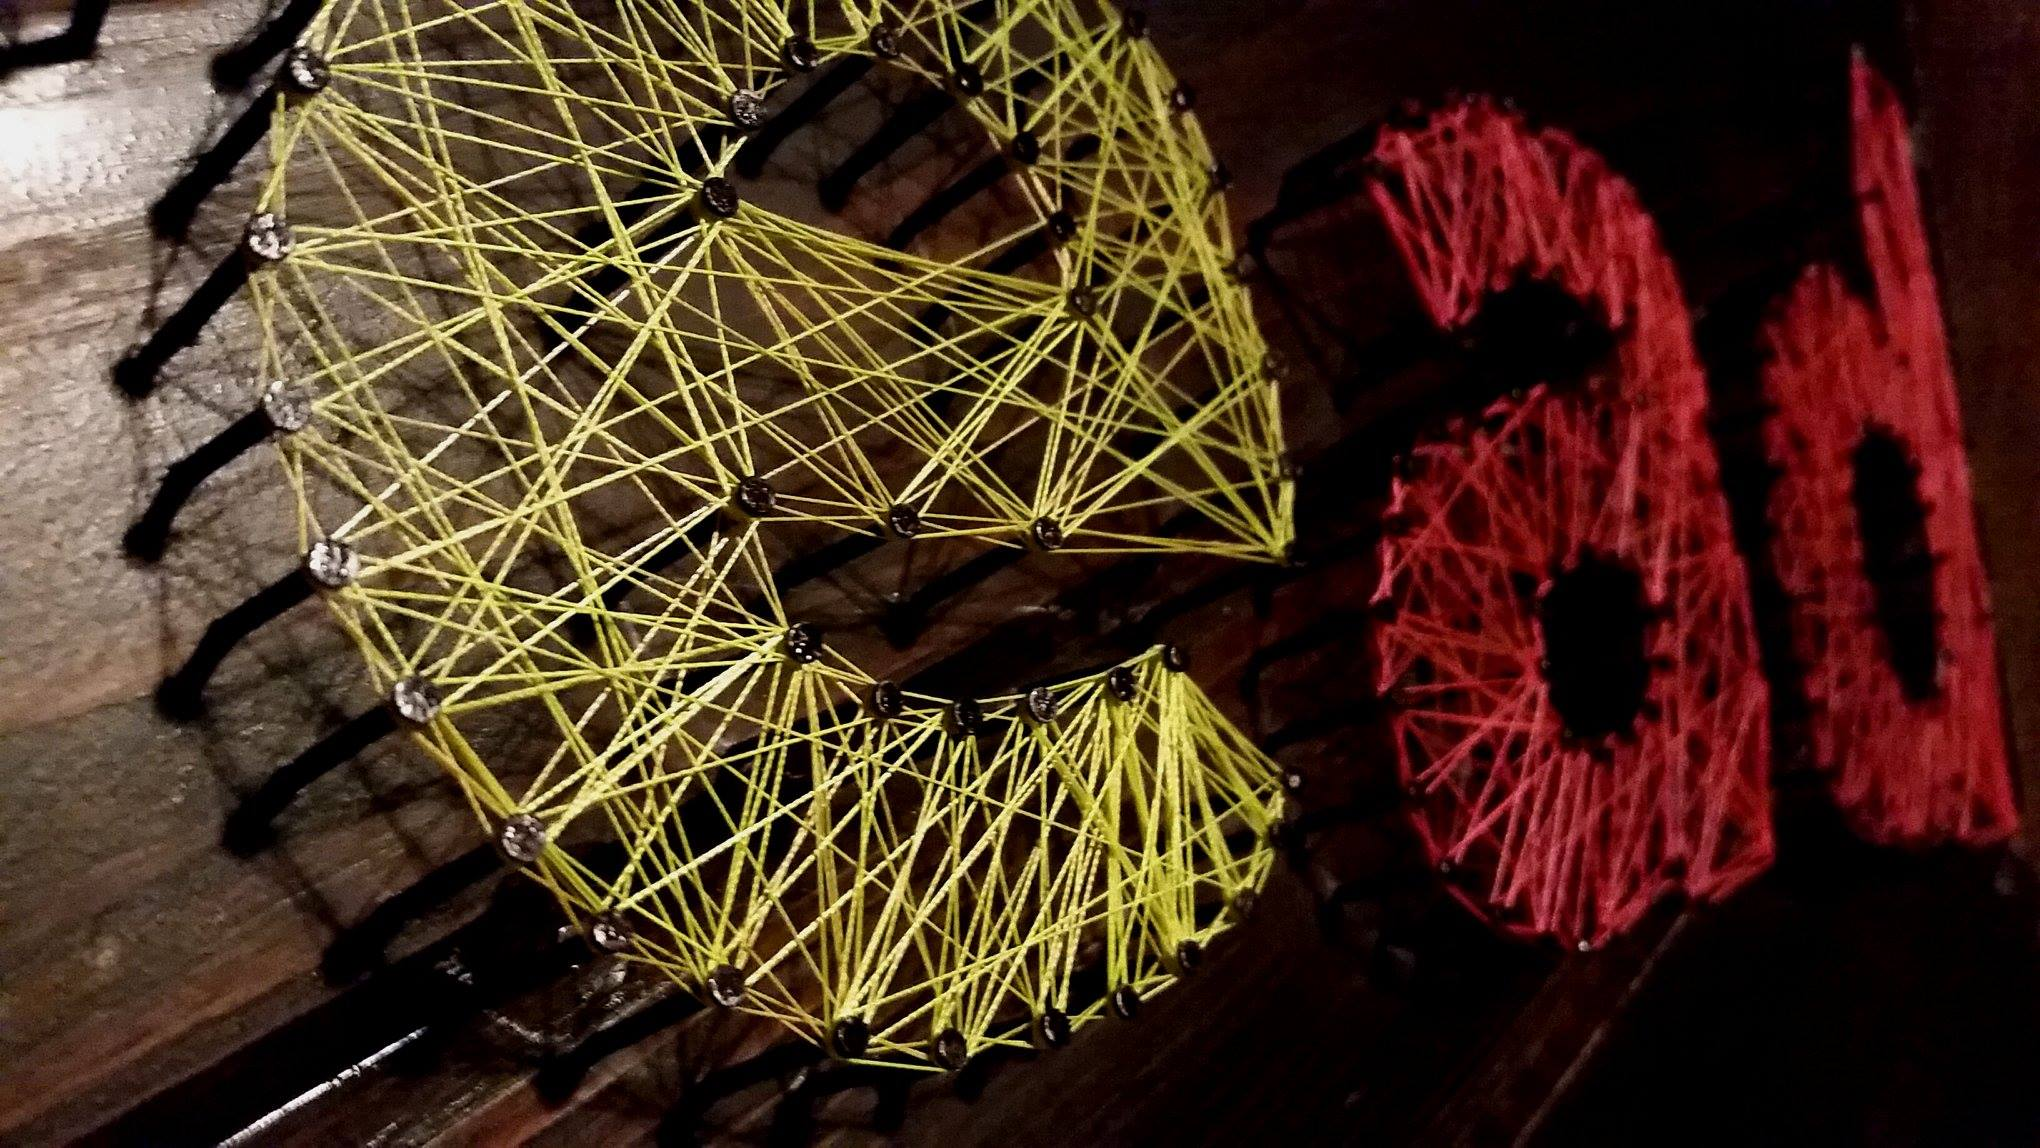 Gildan Clothing Co. string art